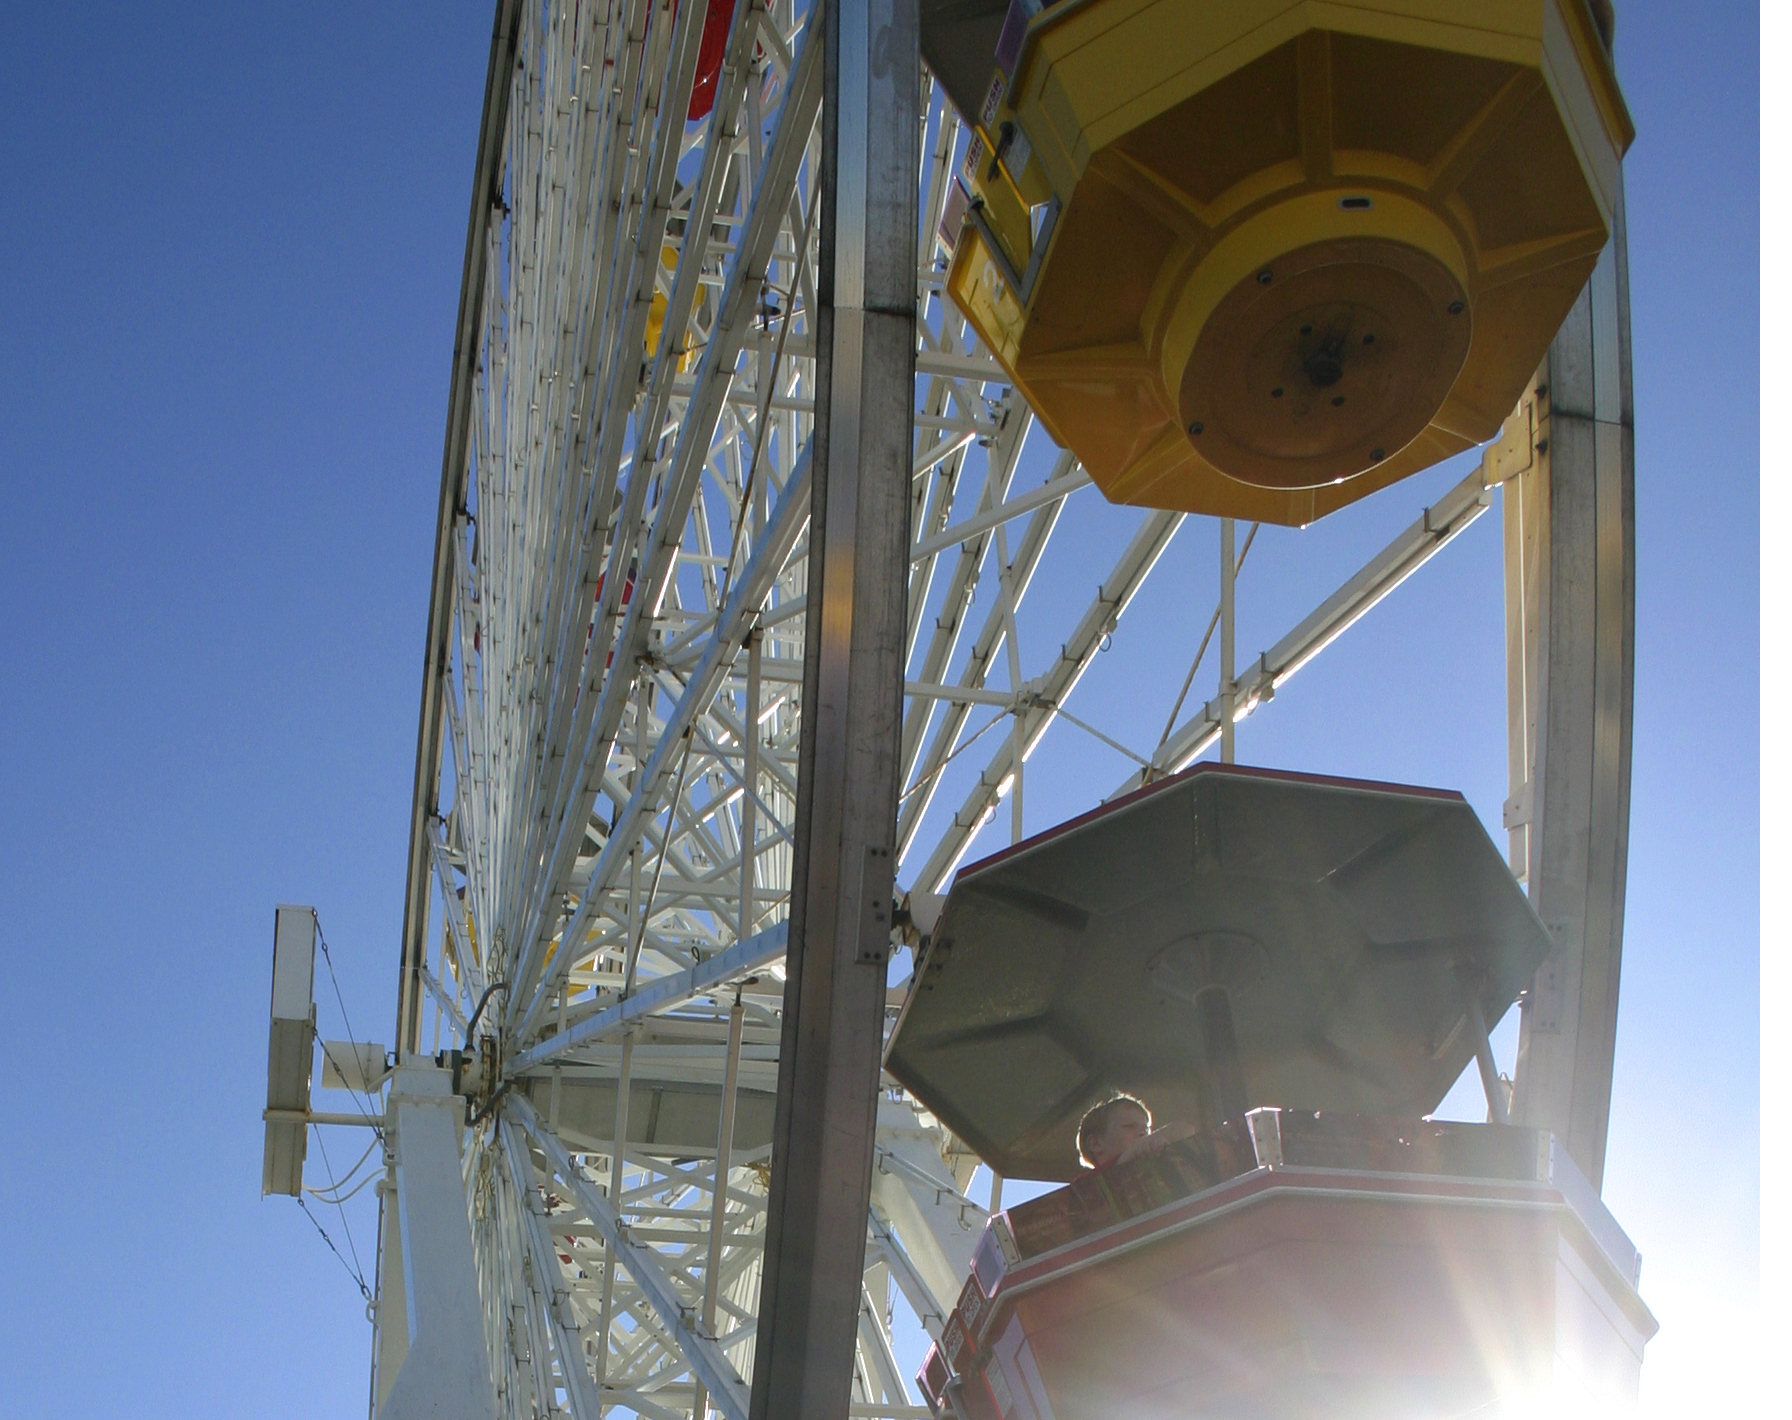 Pacific Wheel (File photo)